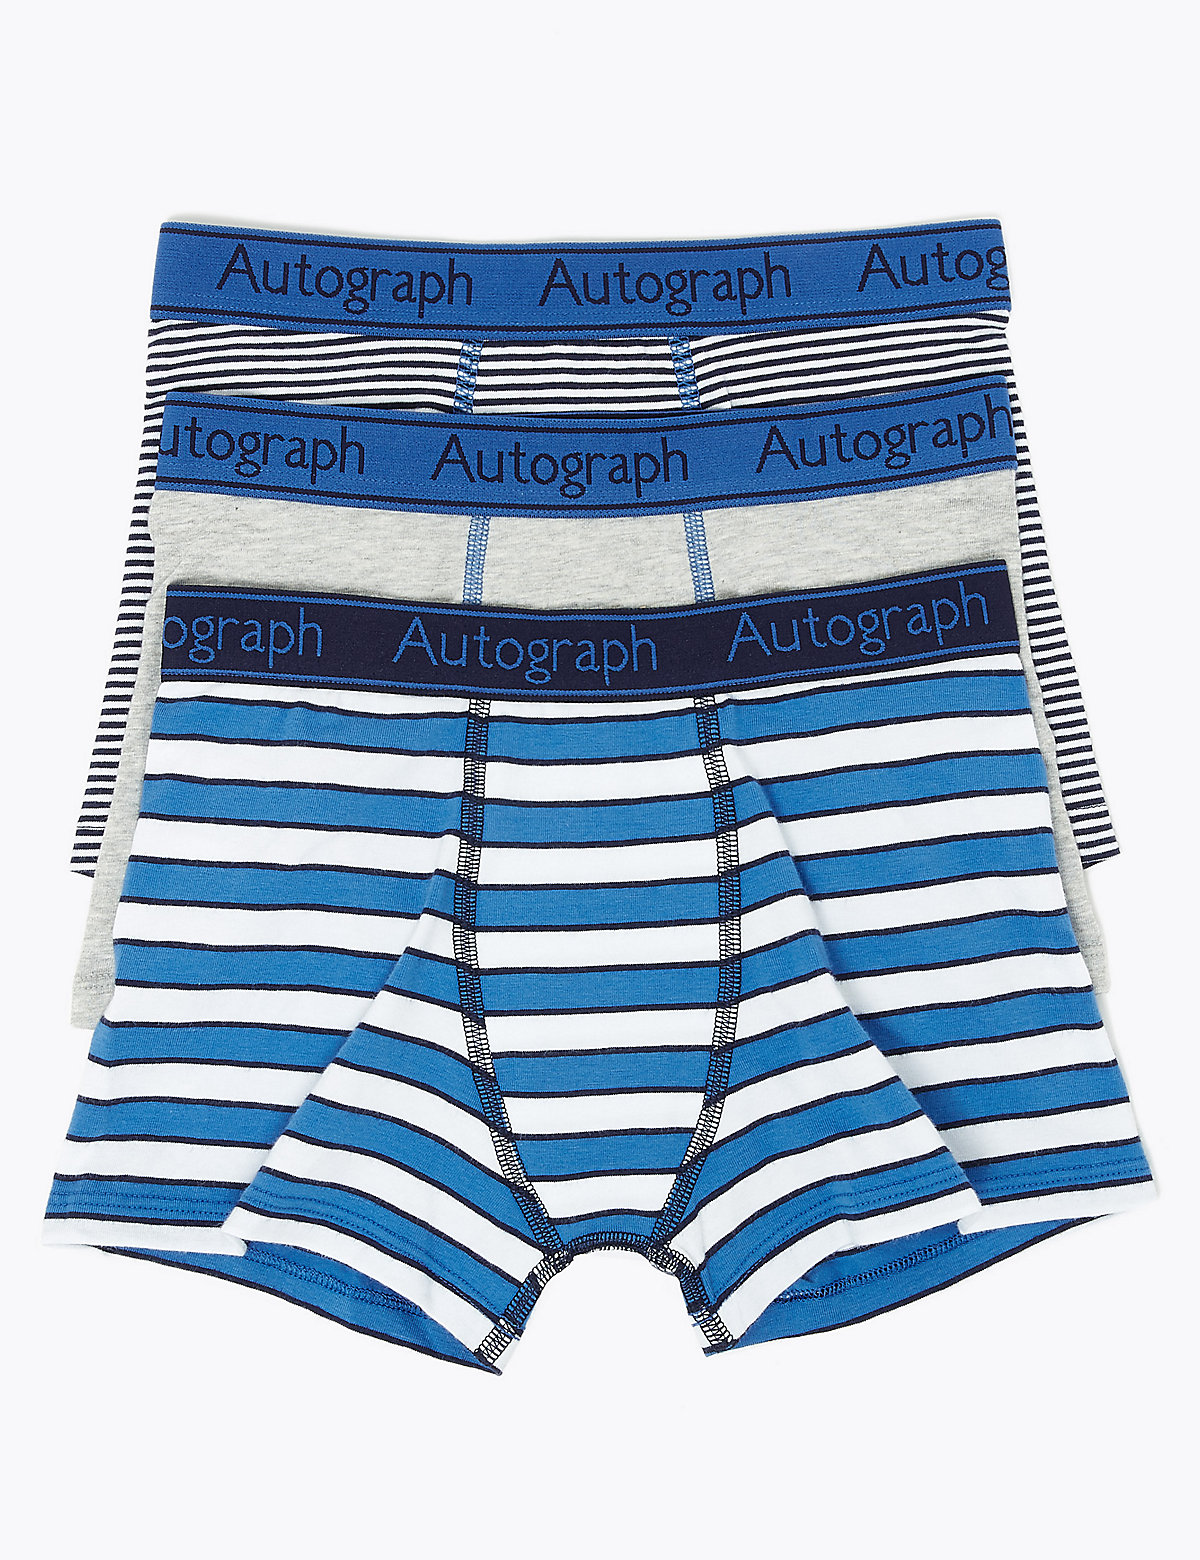 Autograph 3 Pack Cotton with Lycra Striped Trunks (6-16 Years)